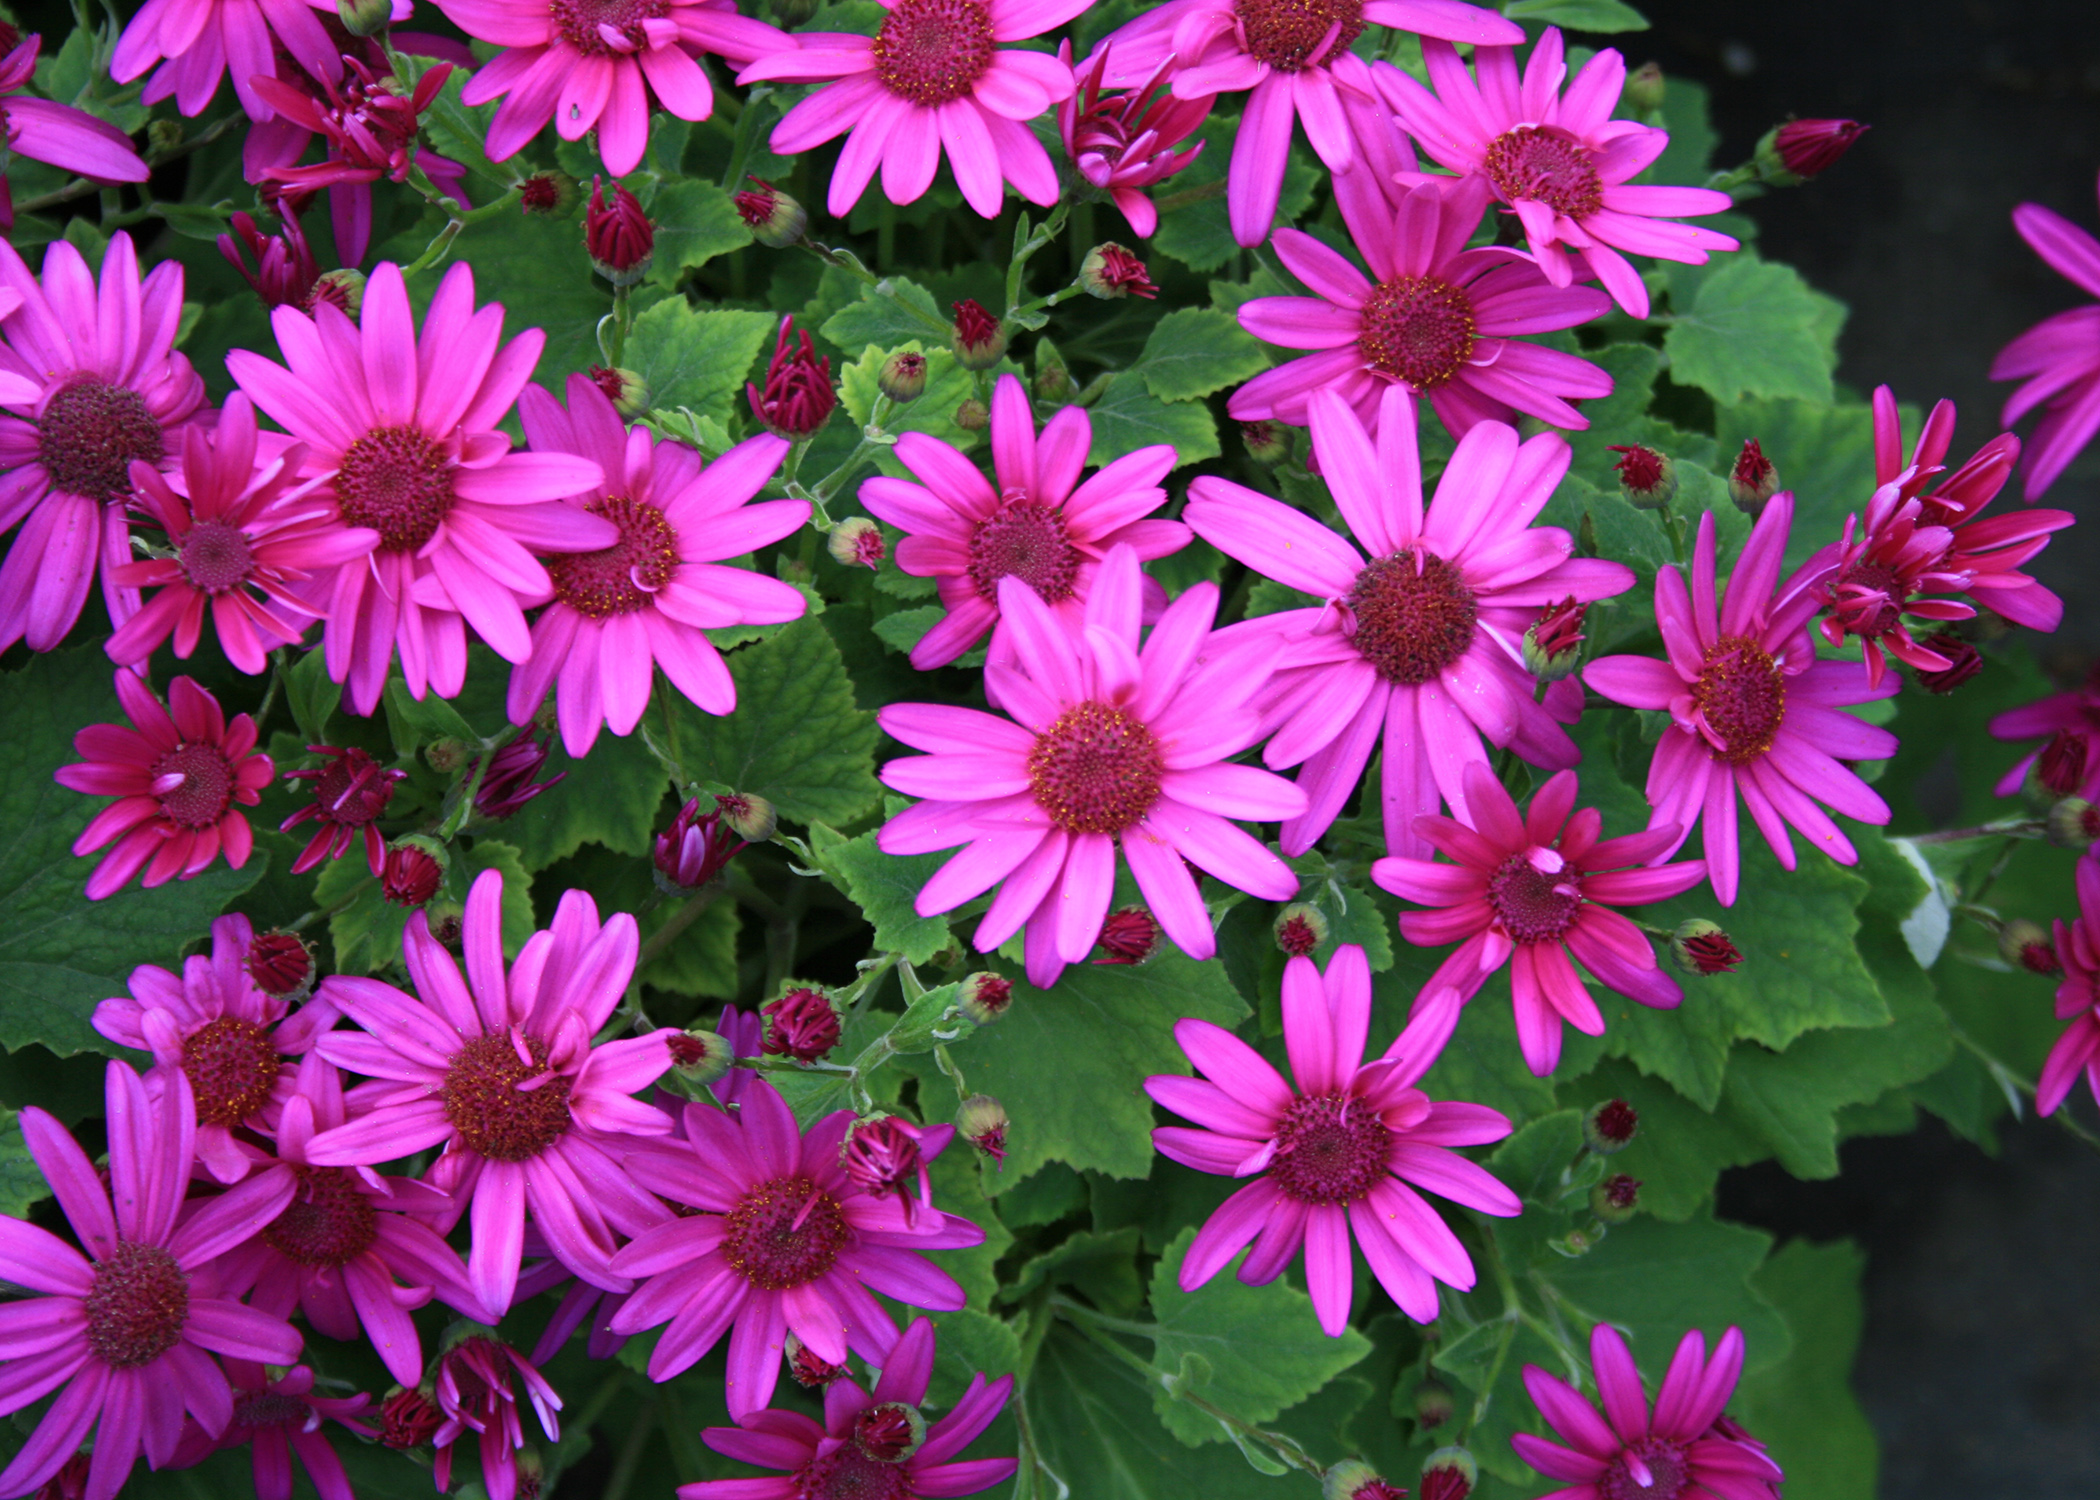 Pericallis bring early color to containers mississippi state use senetti pericallis such as this magenta selection like mums in the fall they look izmirmasajfo